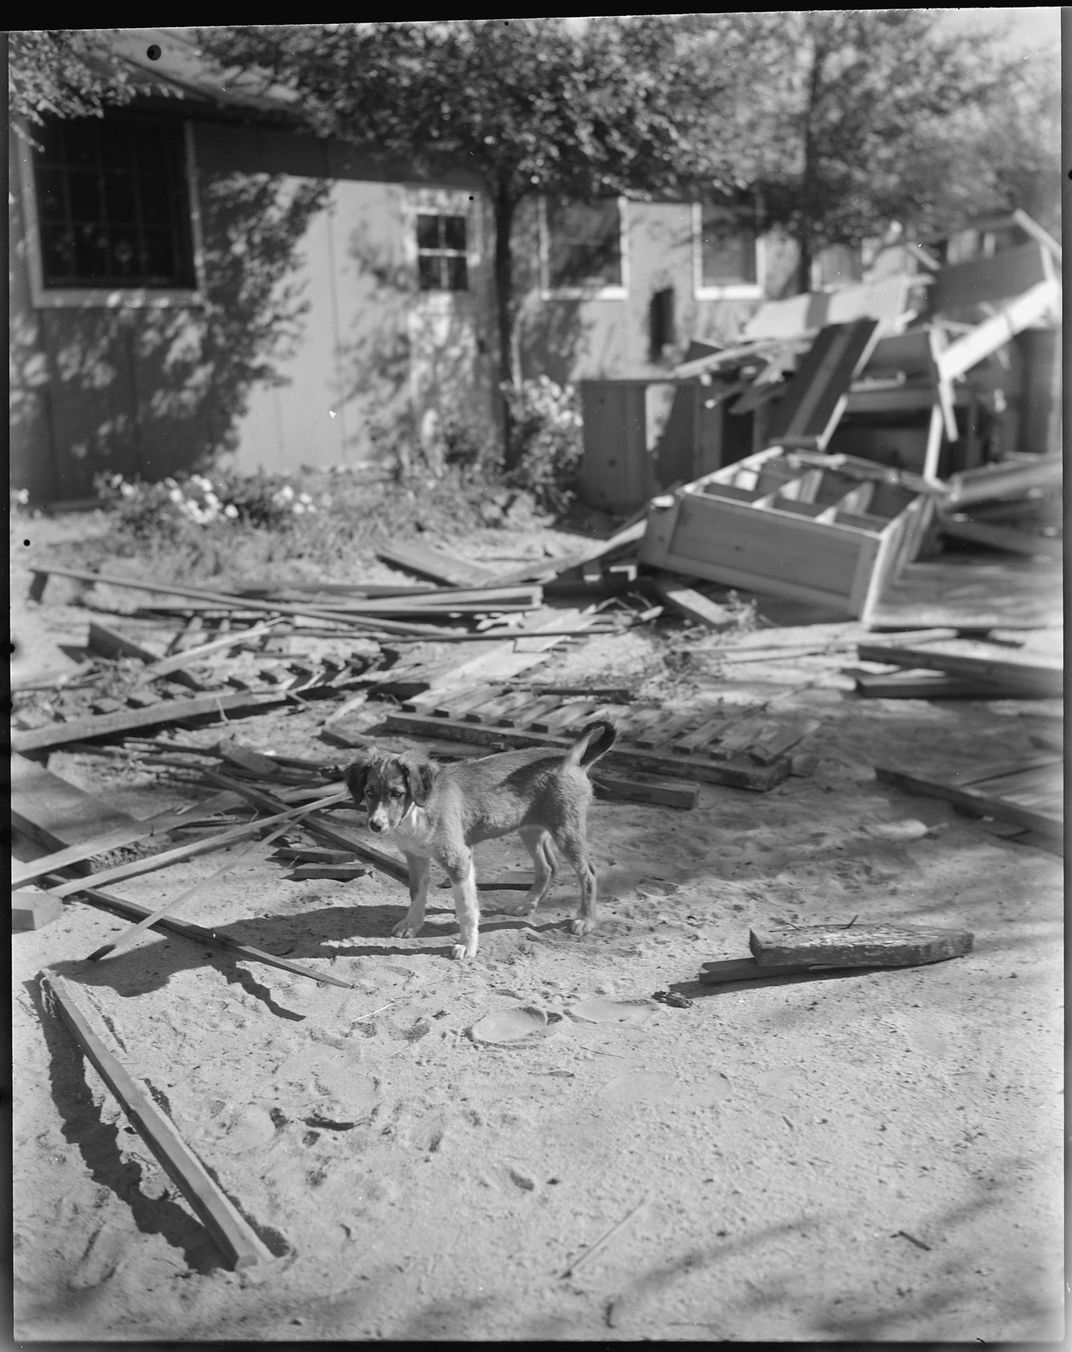 A black and white photo shows a medium size dog standing on a pile of scrap lumber